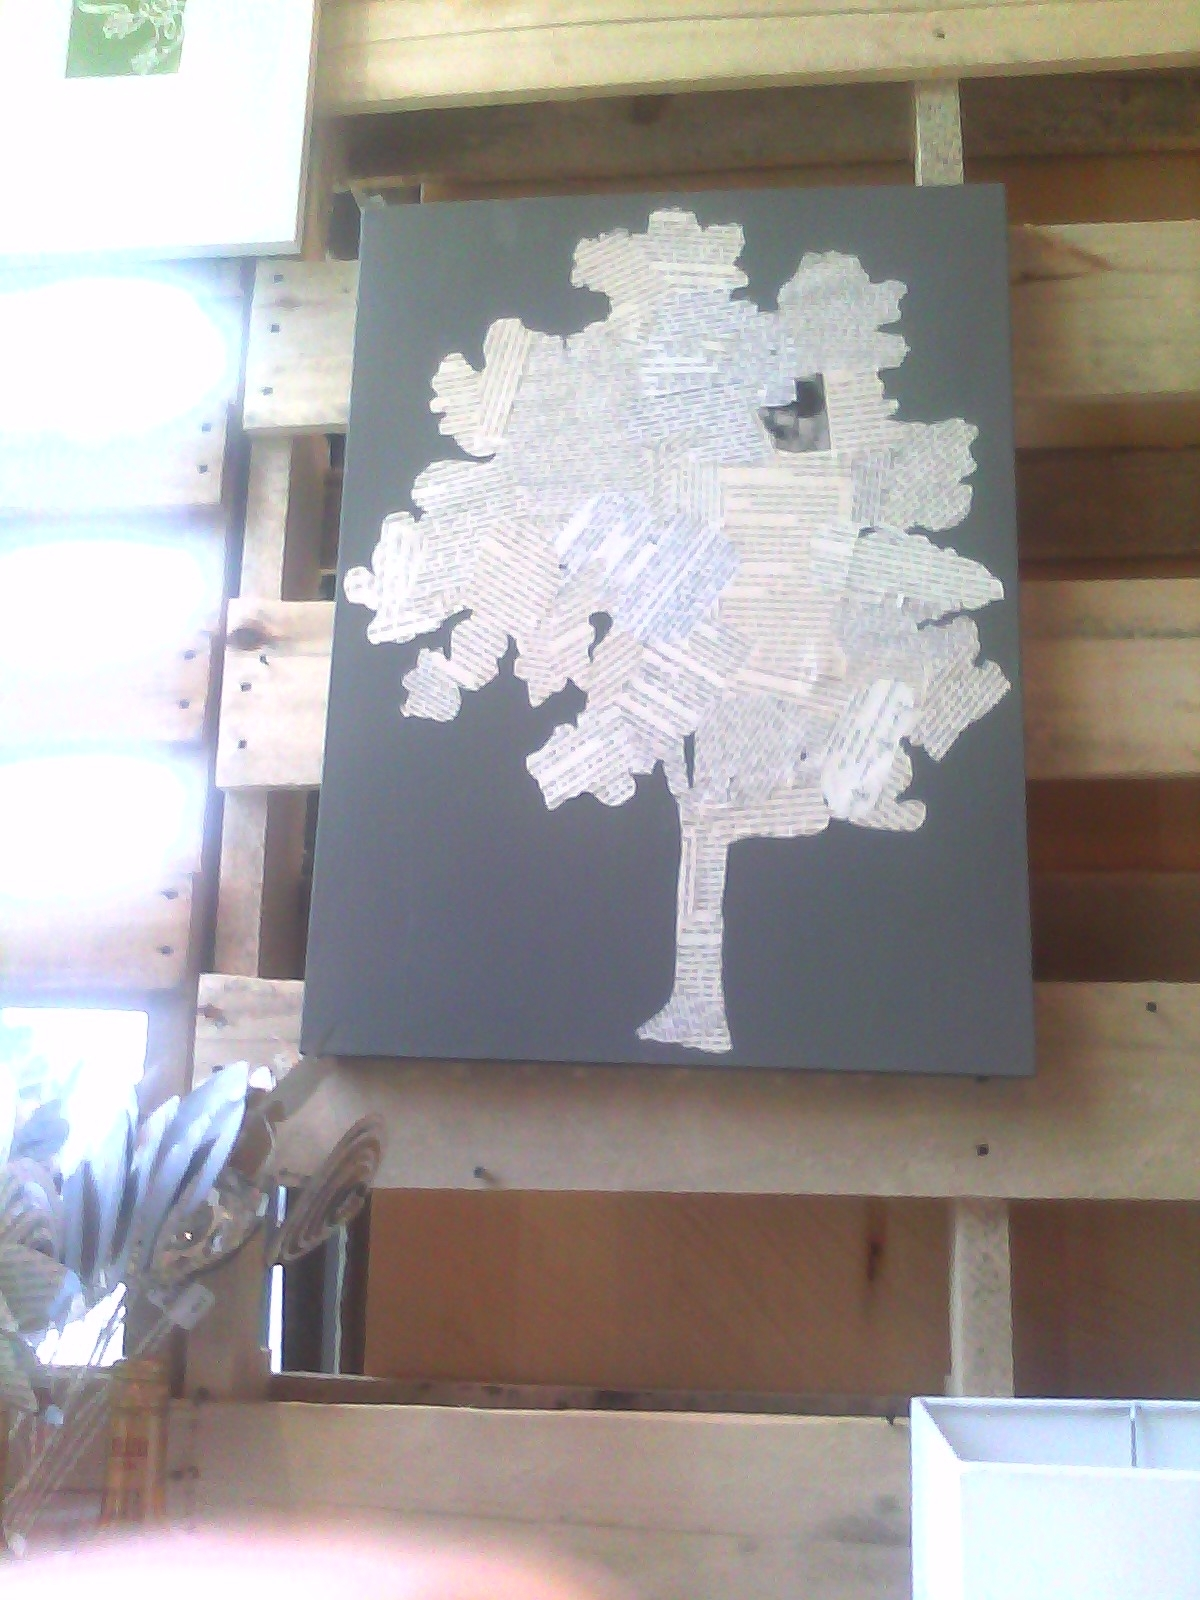 Latest West Elm Wall Art Within Inside Out Design: West Elm Wall Art  Copied! (Gallery 11 of 20)